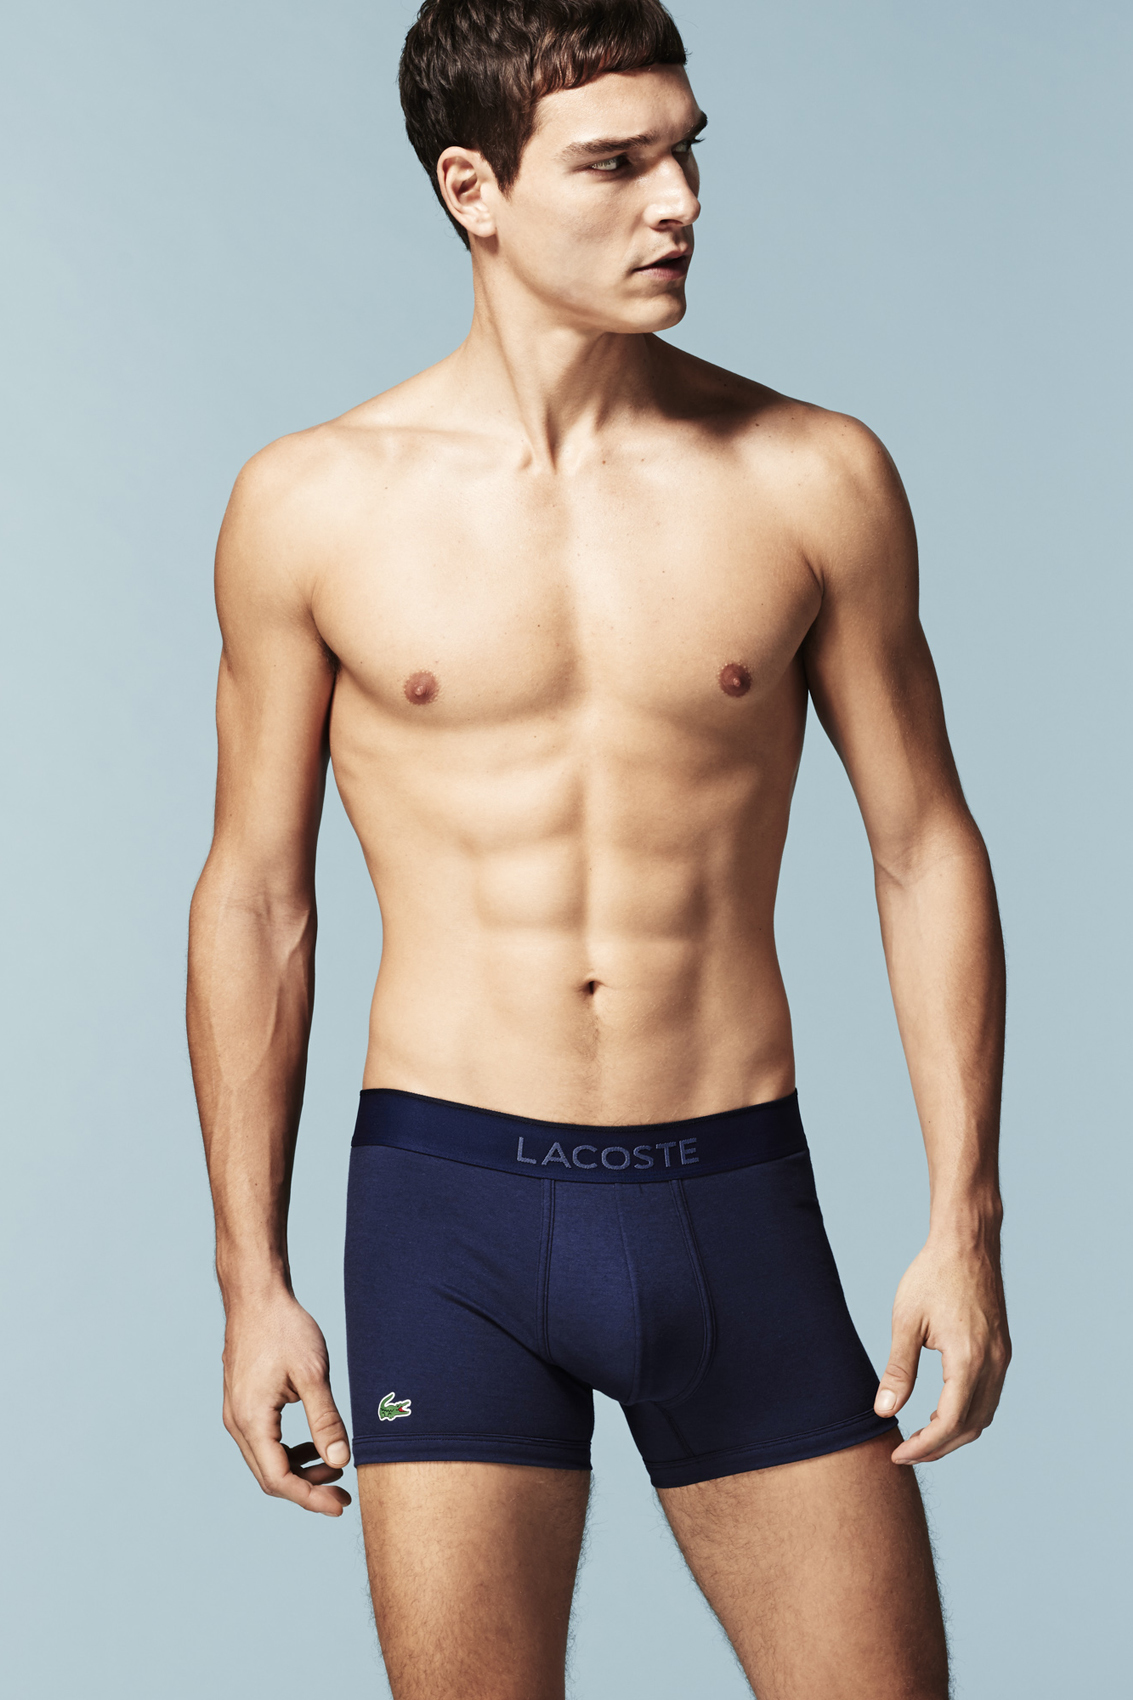 fd262f4d50 Lacoste boxer donkerblauw micro piqué